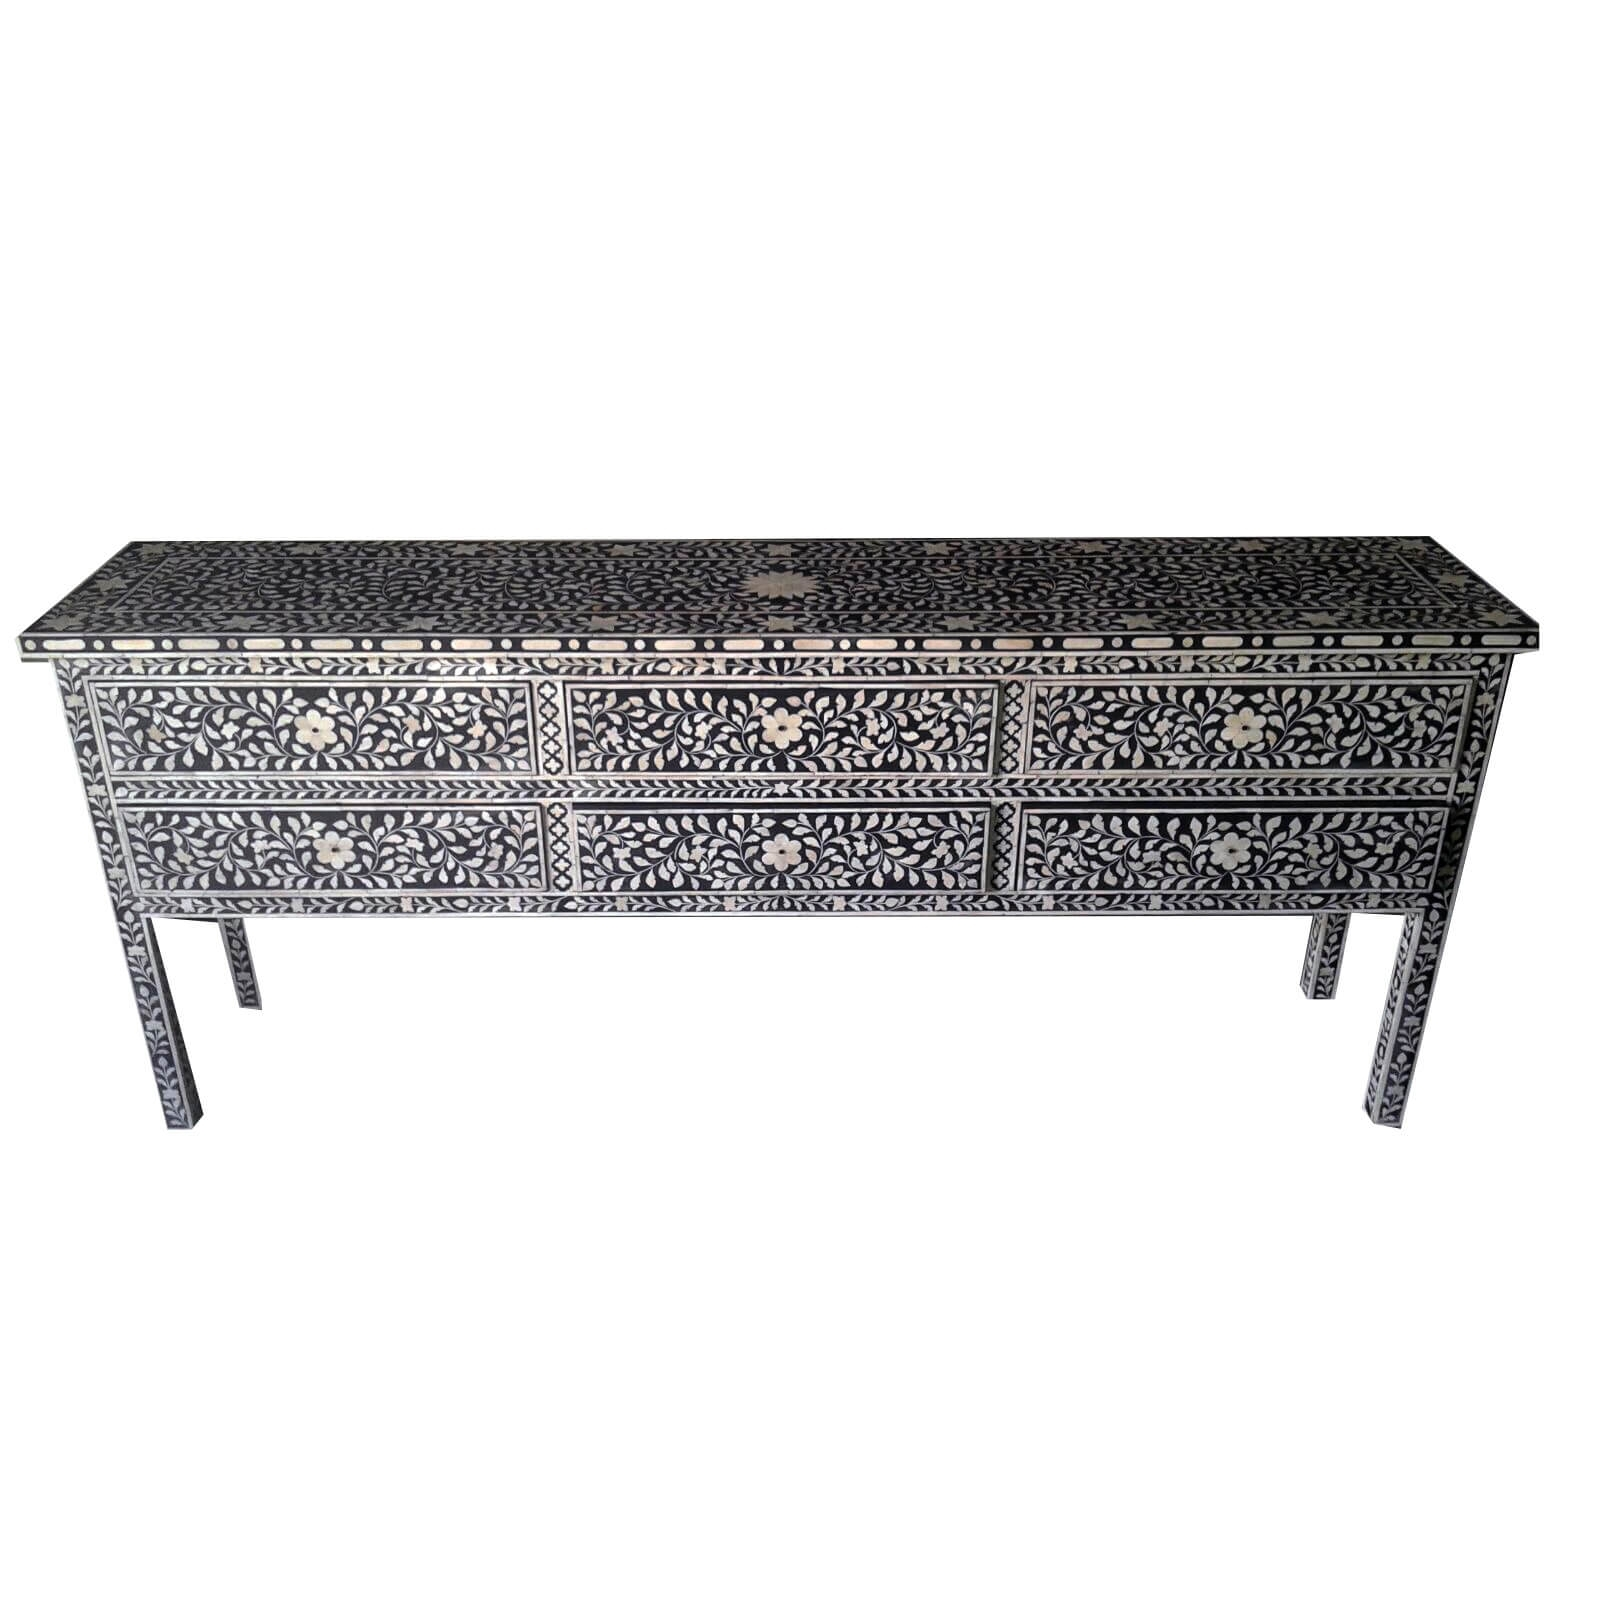 Black Bone Inlay Large Sideboard | Iris Furnishing Regarding Most Up To Date Geo Pattern Black And White Bone Inlay Sideboards (View 8 of 20)